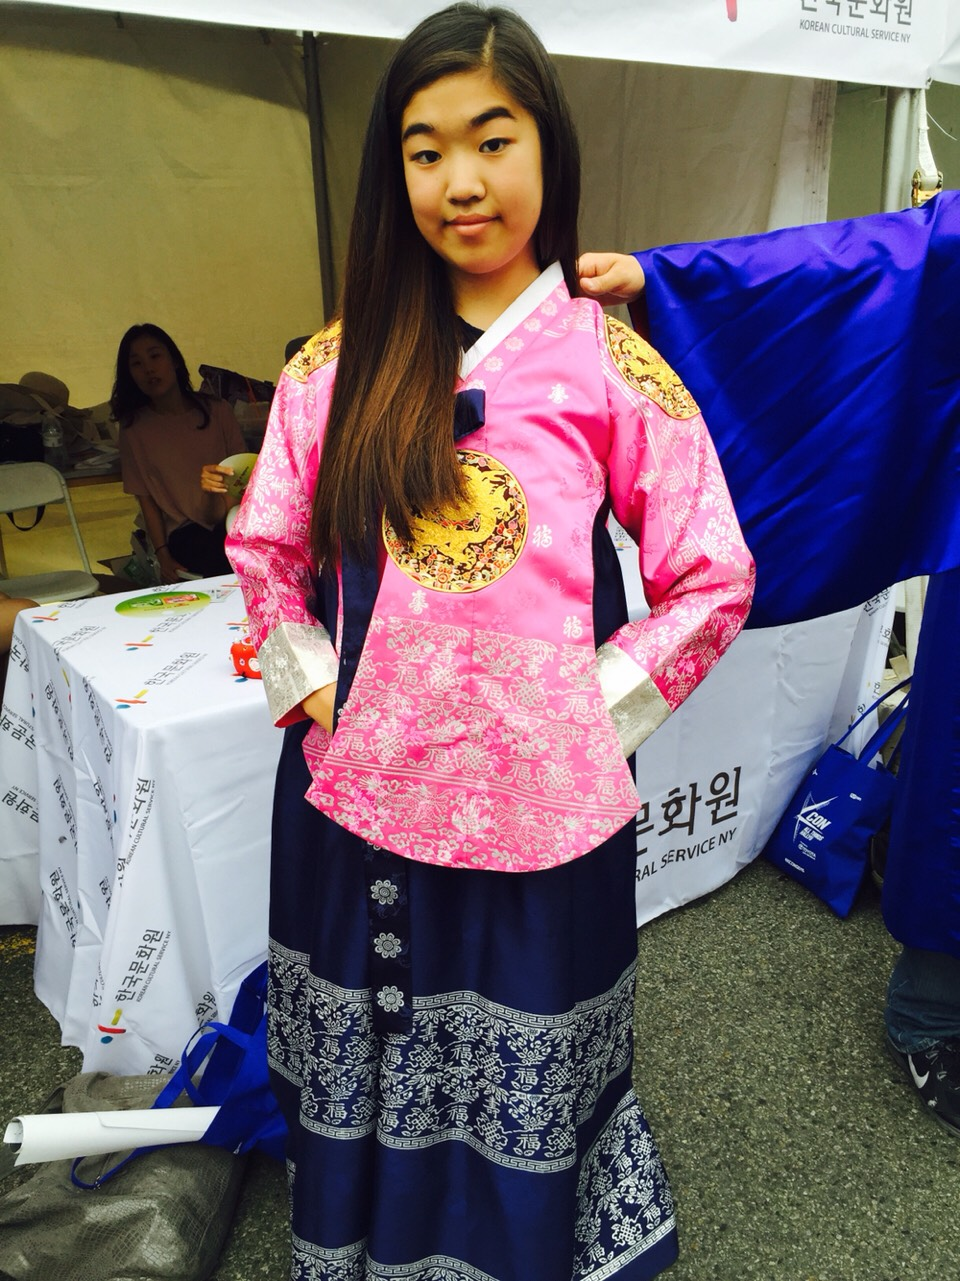 THE RIGHT WAY TO WEAR A HANBOK (한복)